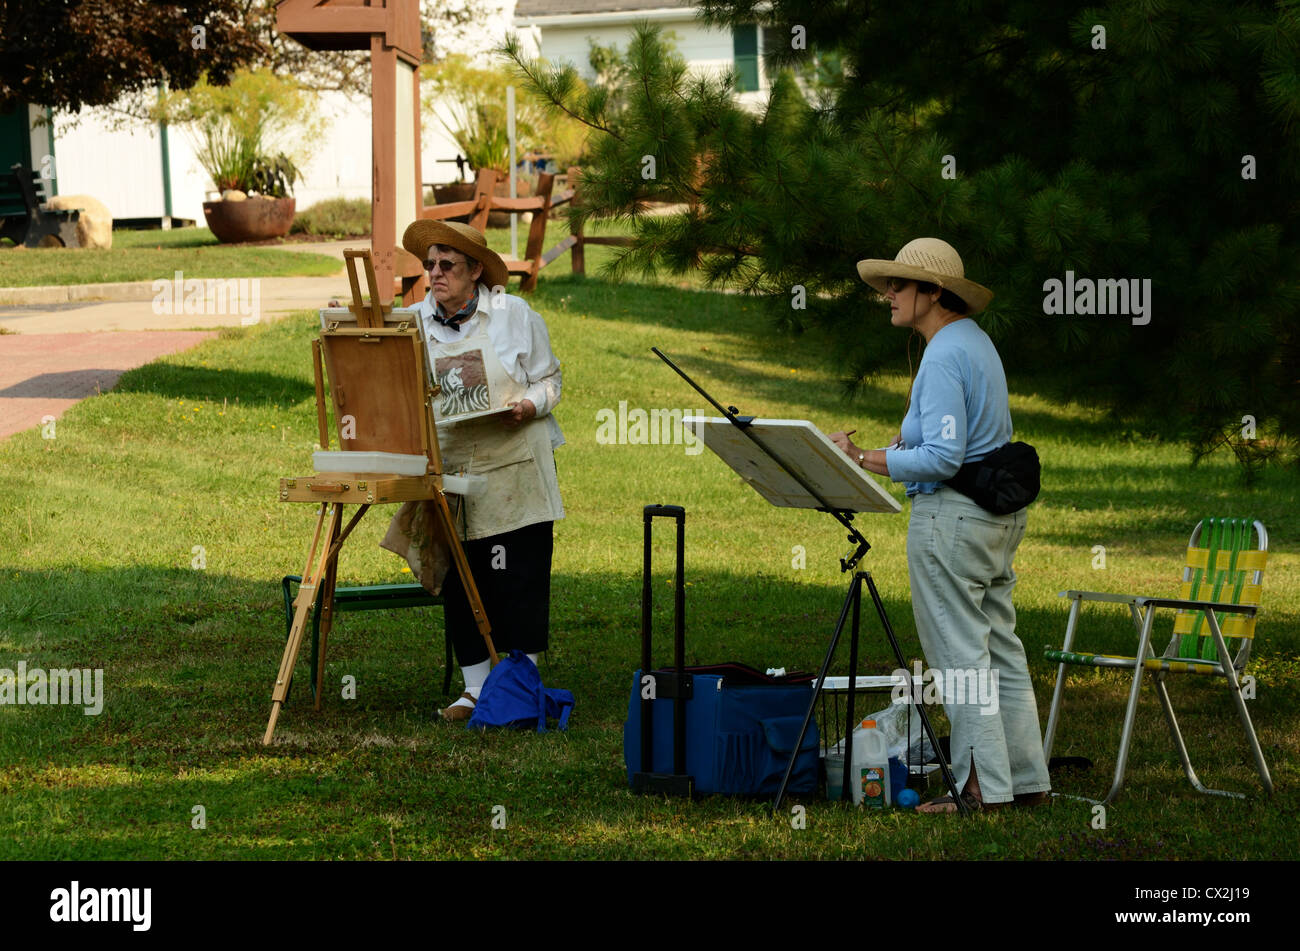 Plein Aire artists painting out doors. - Stock Image